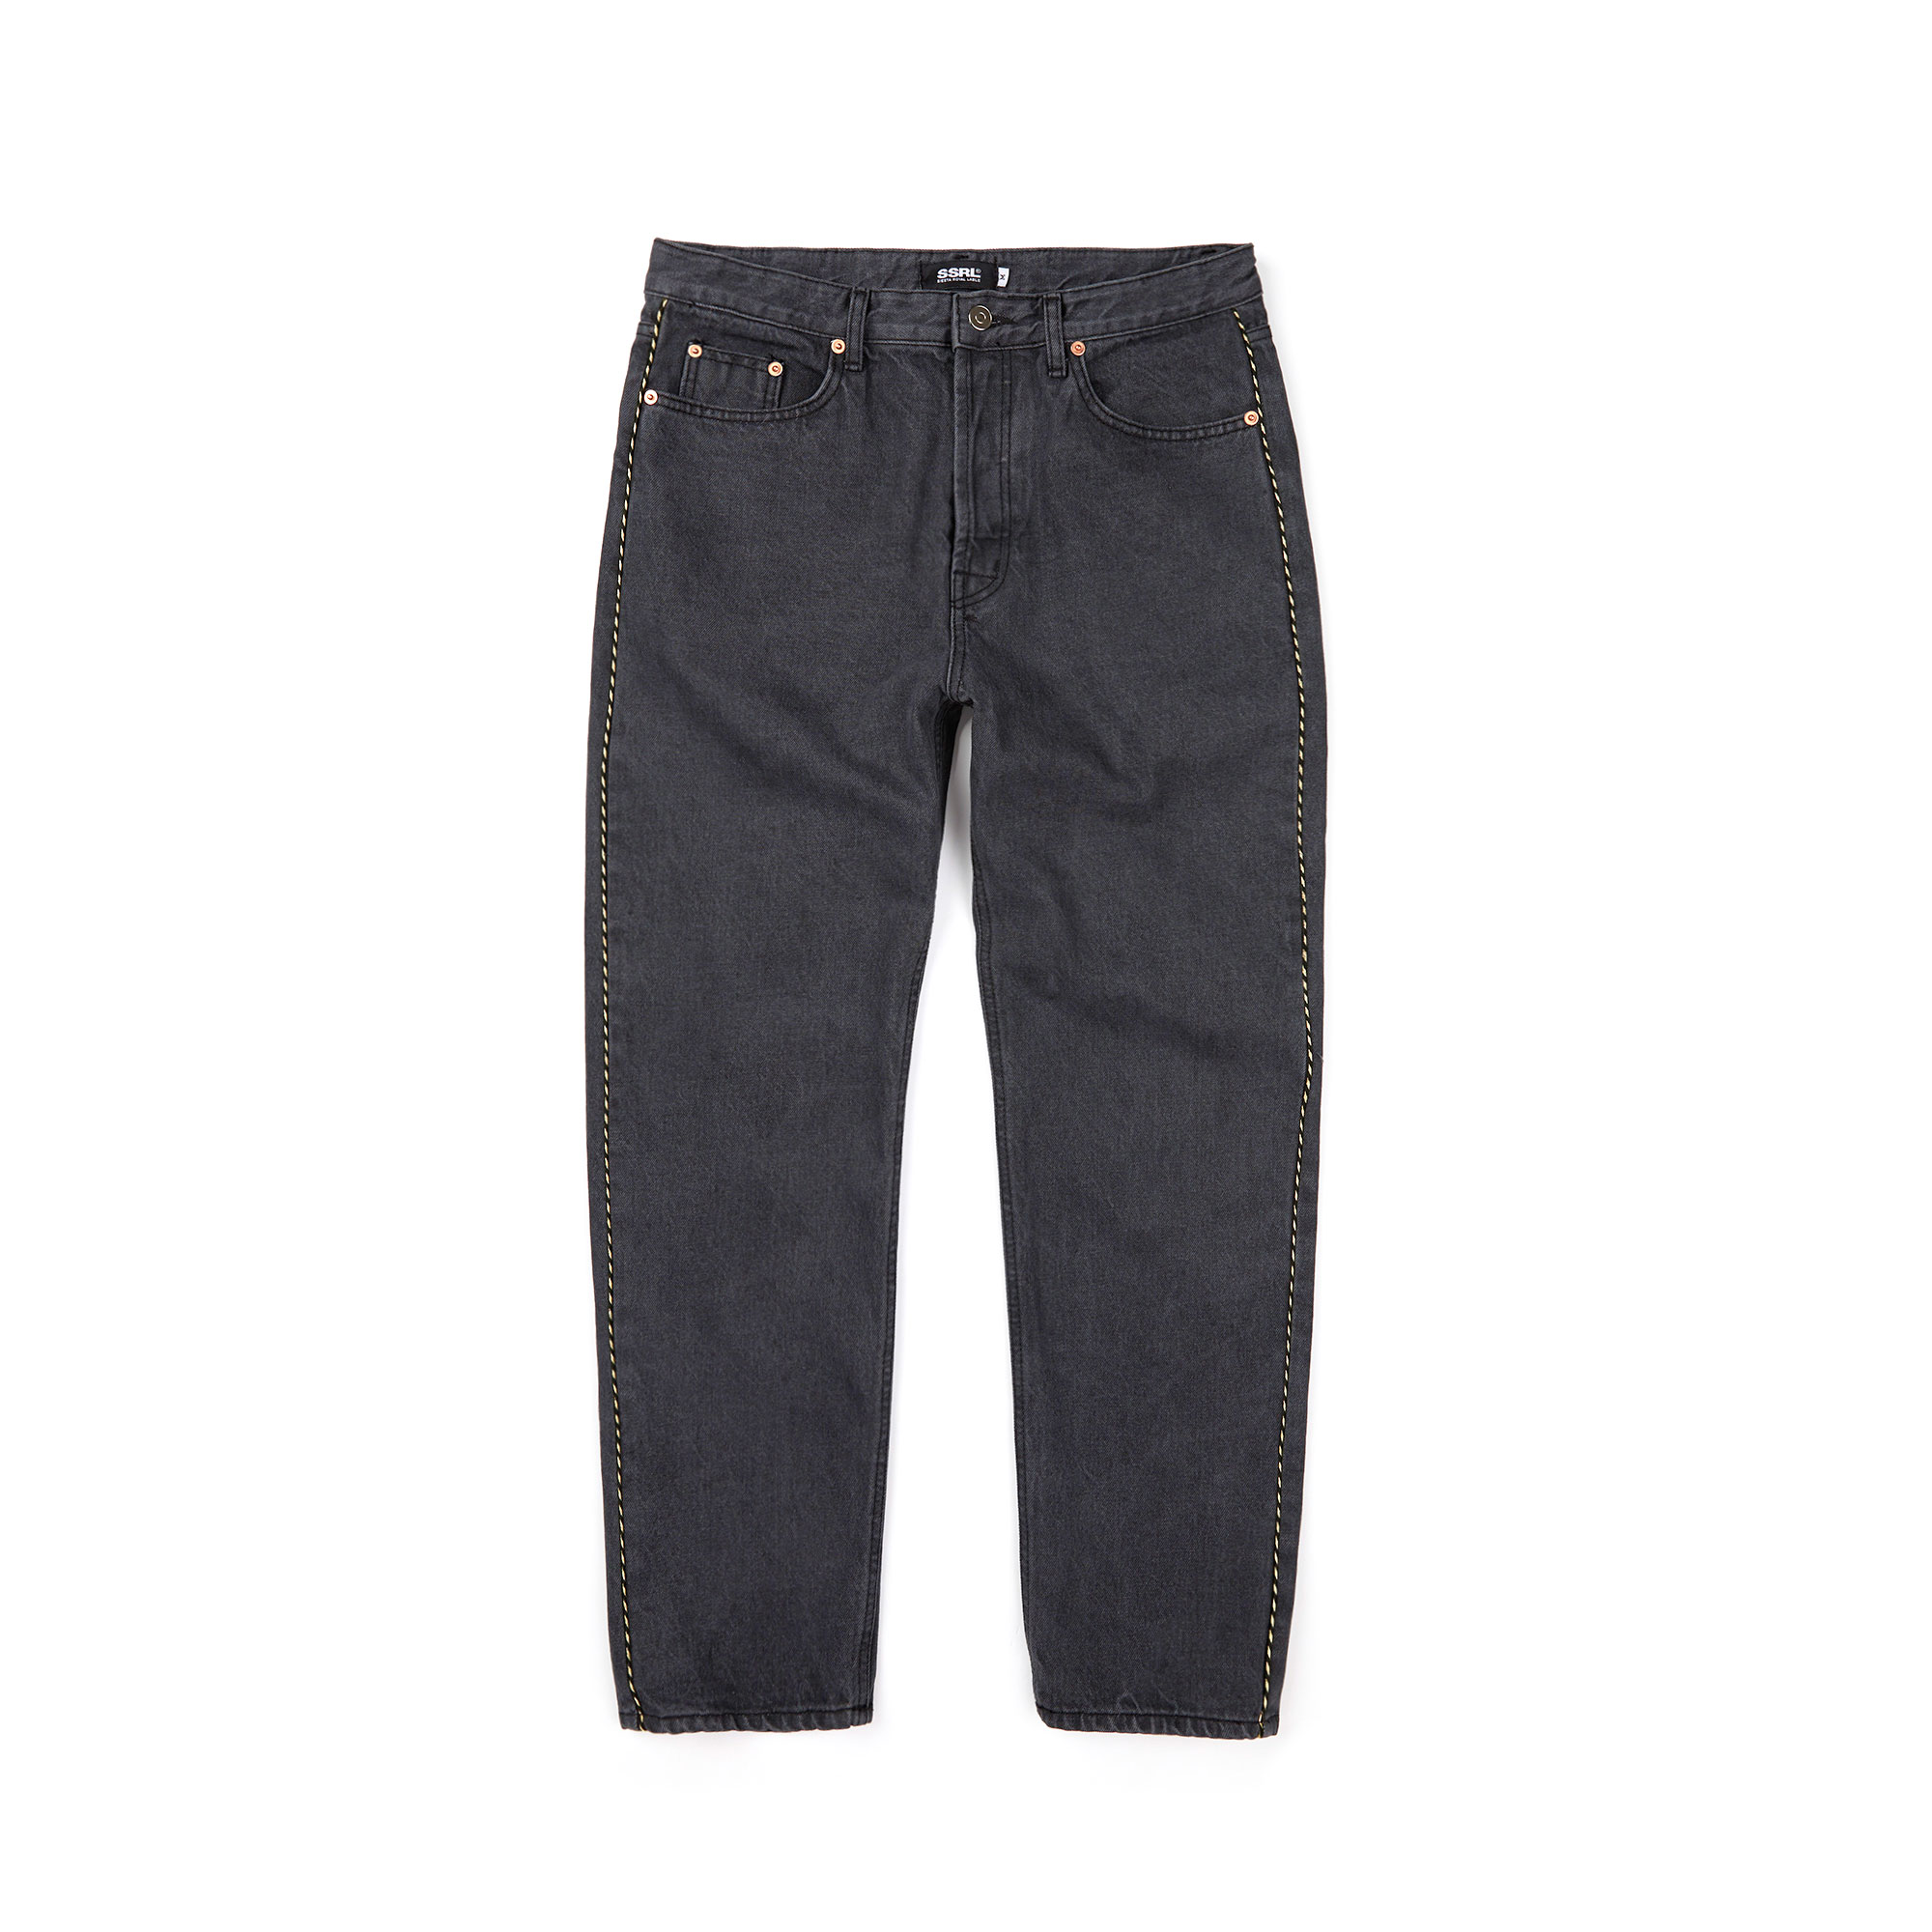 western denim pants / black